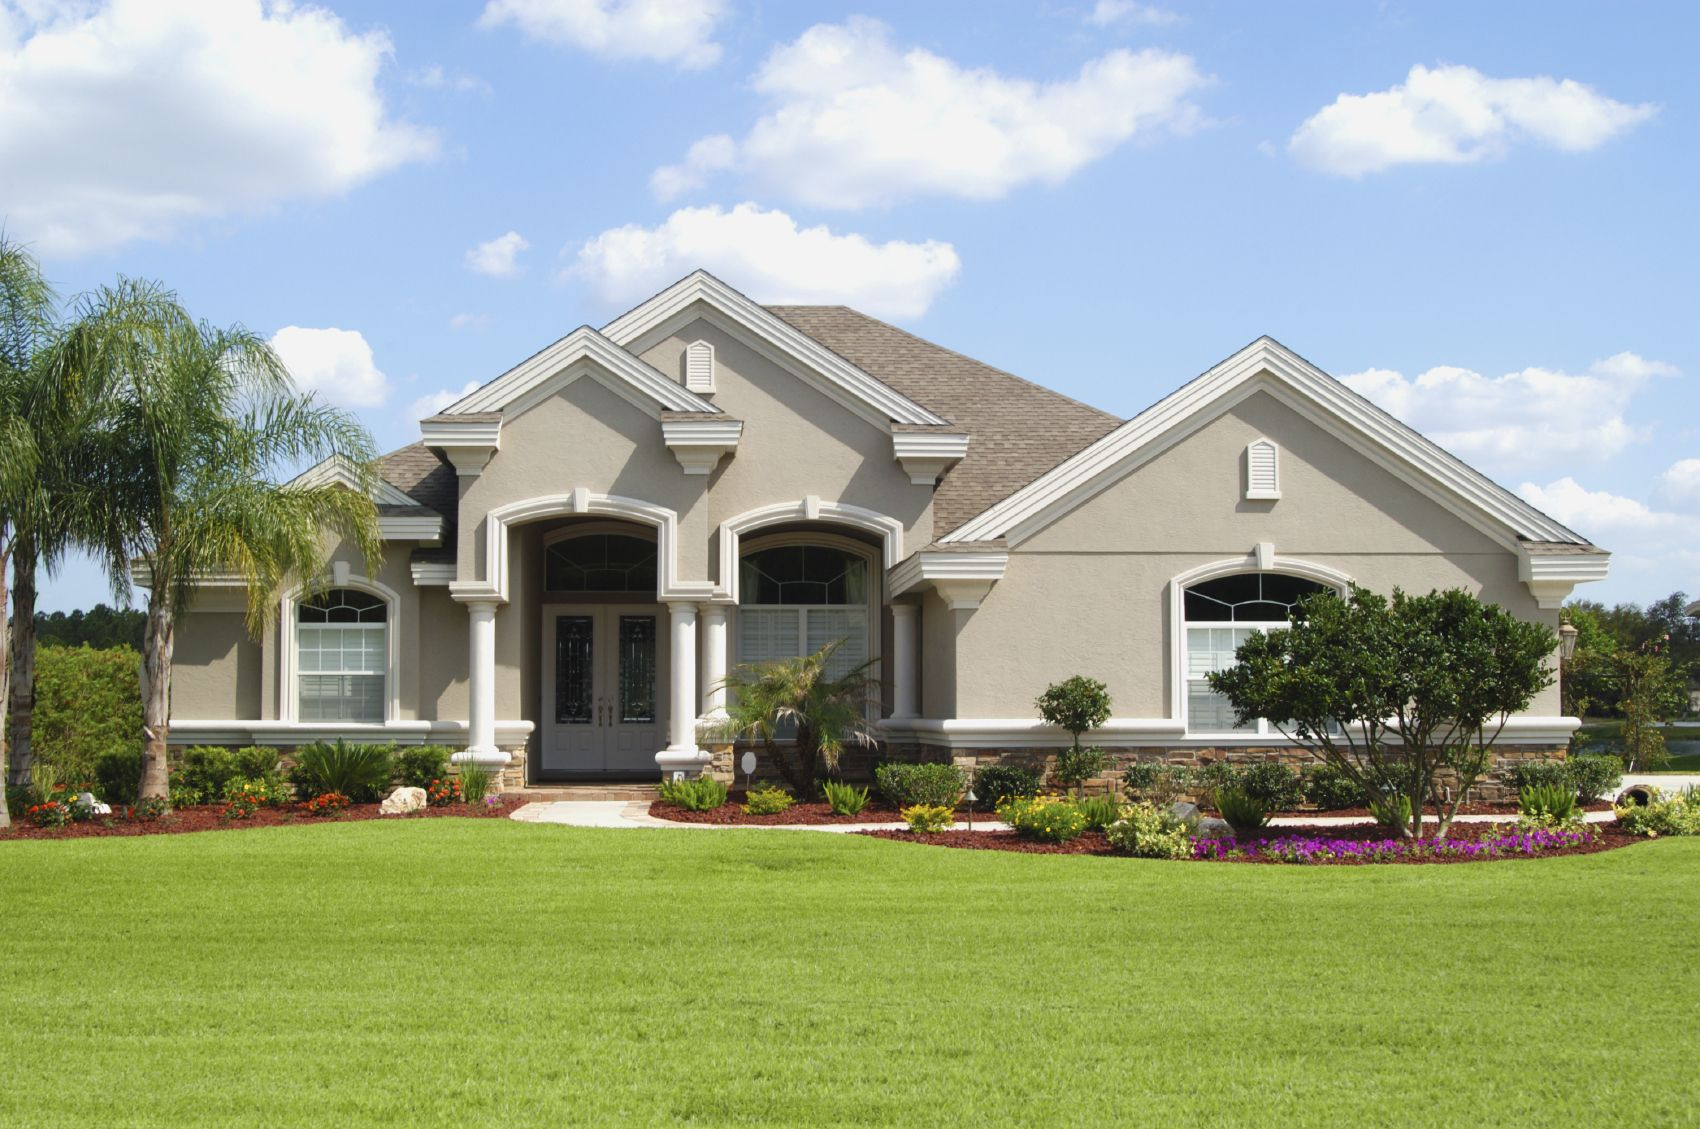 Stucco Stone Exterior Choosing Exterior Stucco Cleaning And Maintaining Exterior Stucco